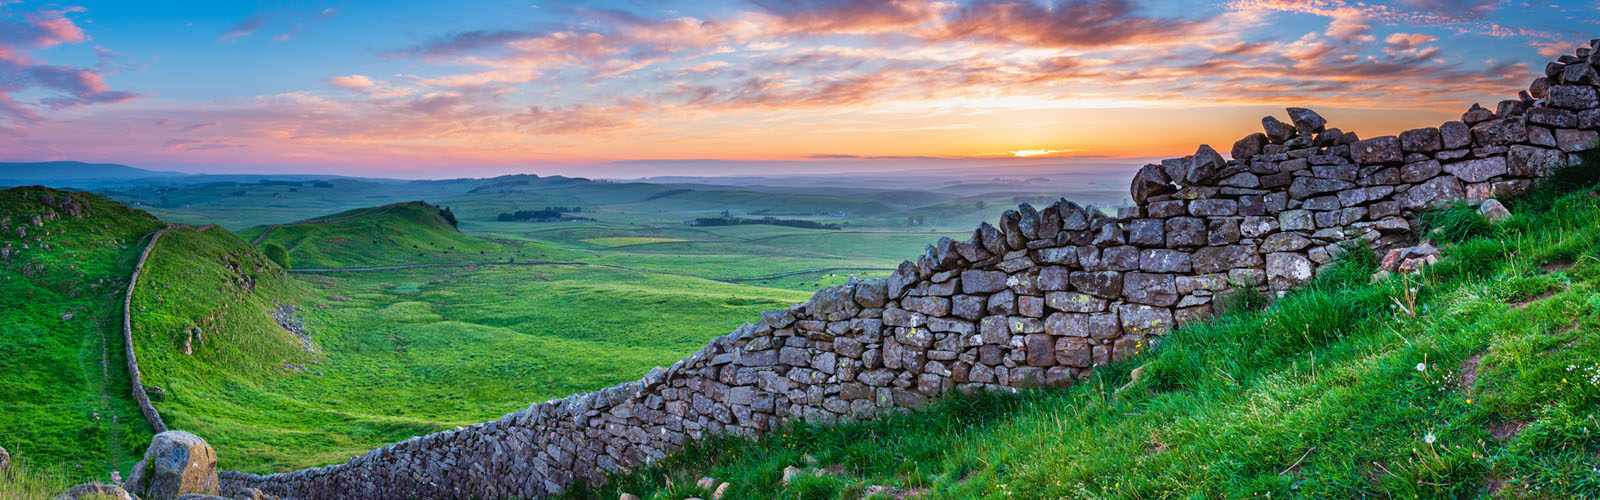 Hadrian's Wall at Sunset, a World Heritage Site in the beautiful Northumberland National Park.